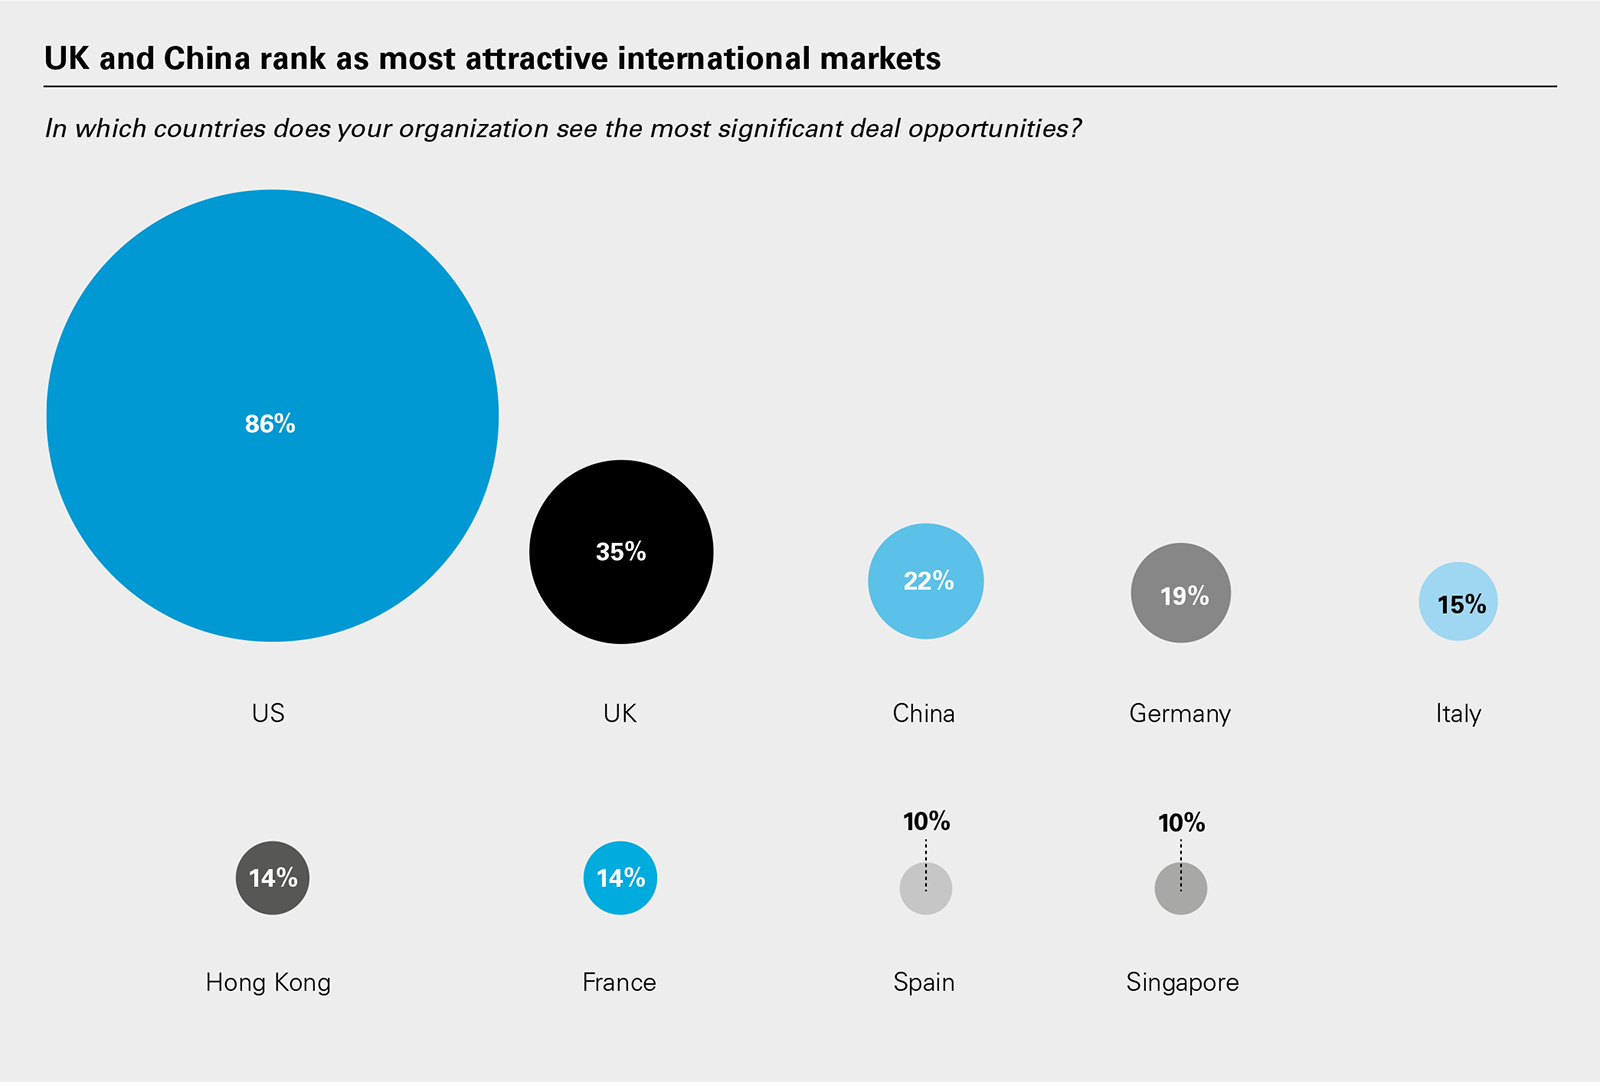 UK and China rank as most attractive international markets